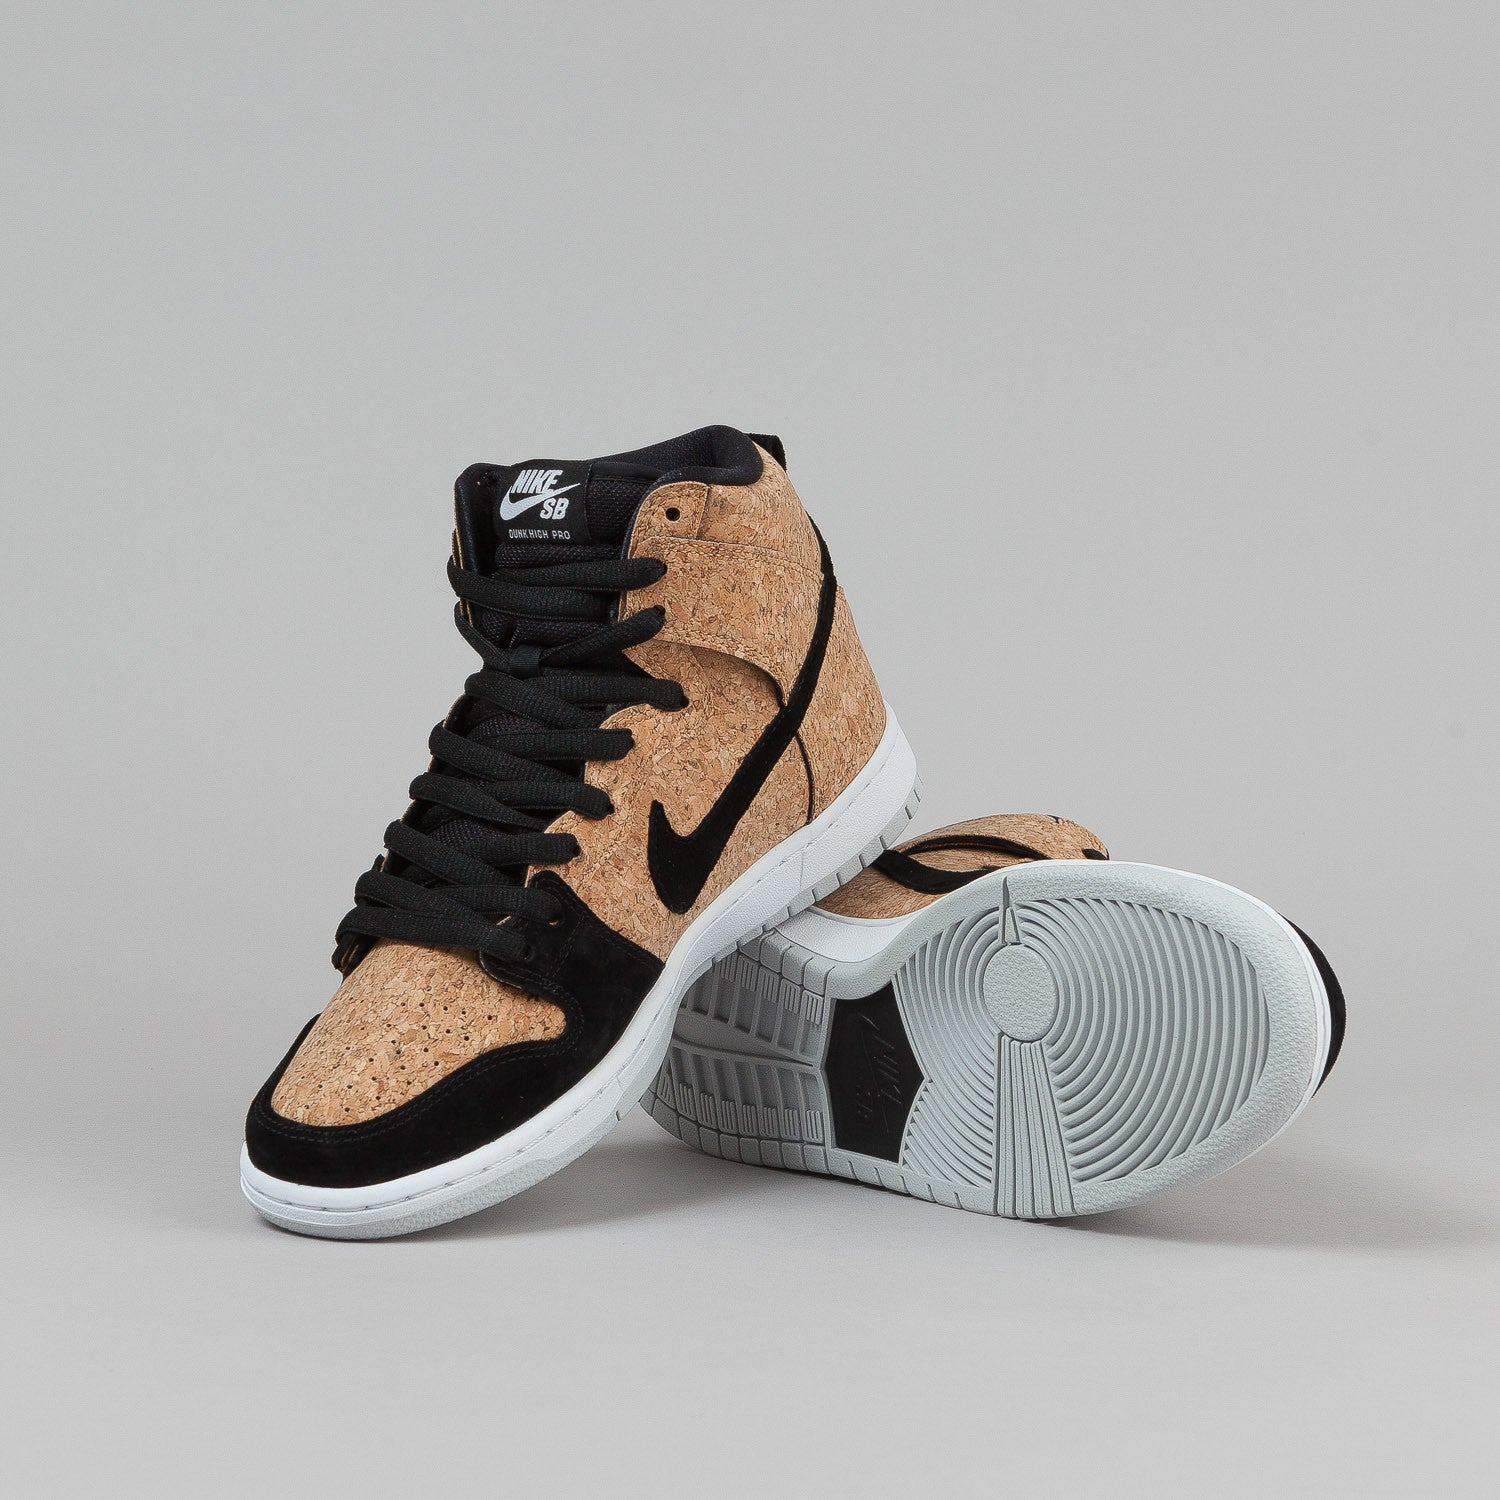 Nike SB Dunk High Premium Shoes - Black / Hazelnut / White / Black